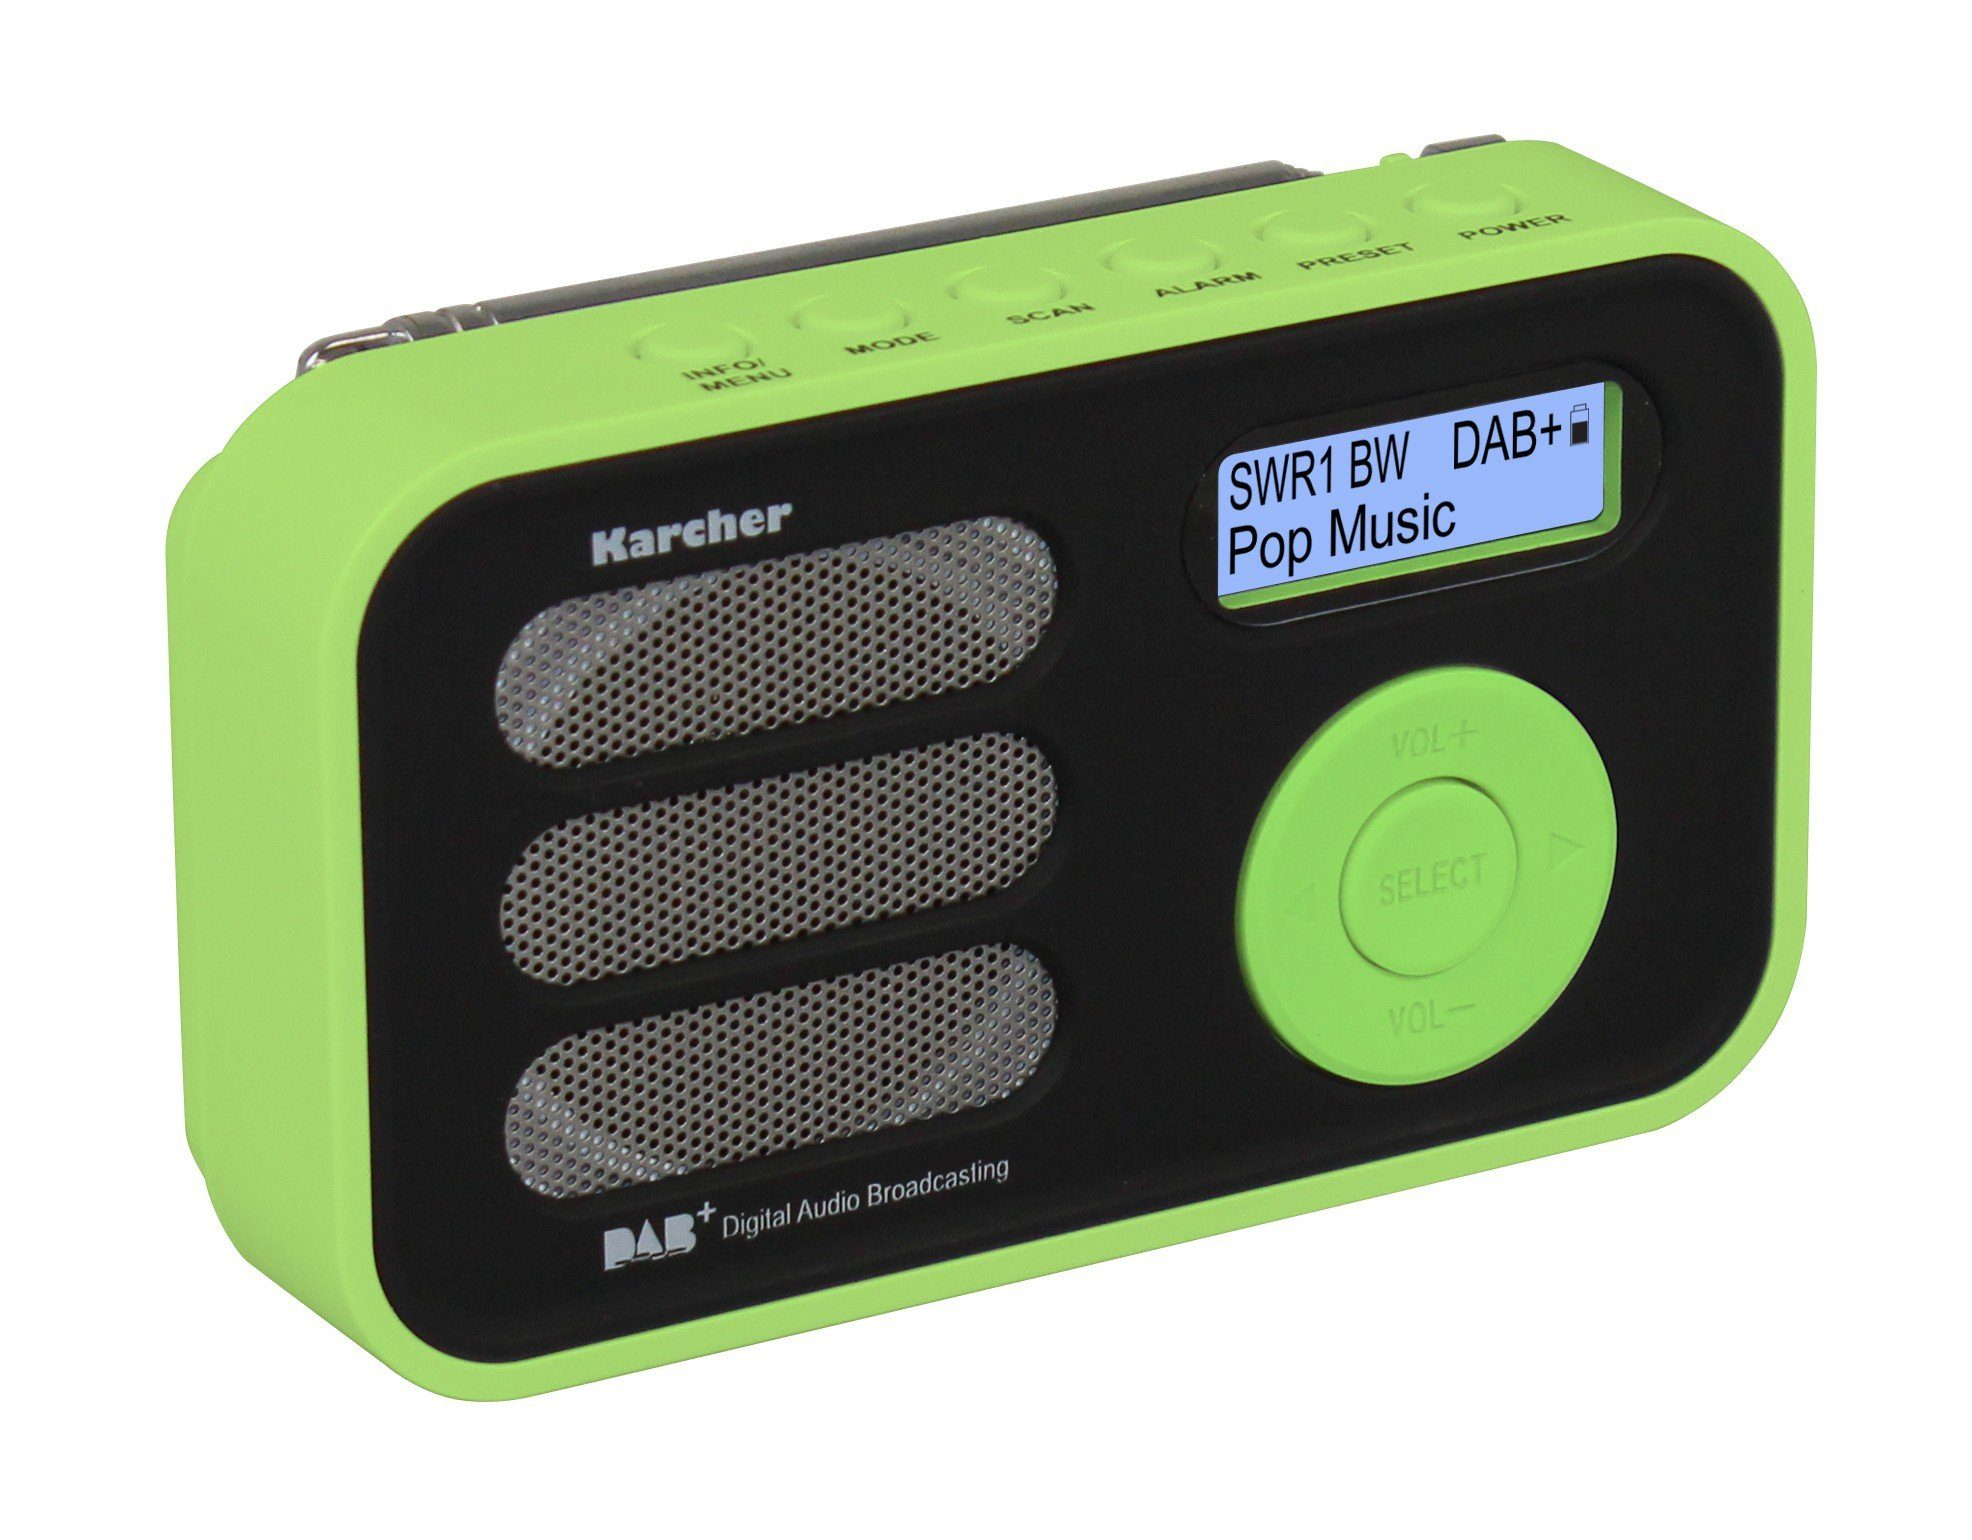 Karcher tragbares Digitalradio »DAB 2410-G«